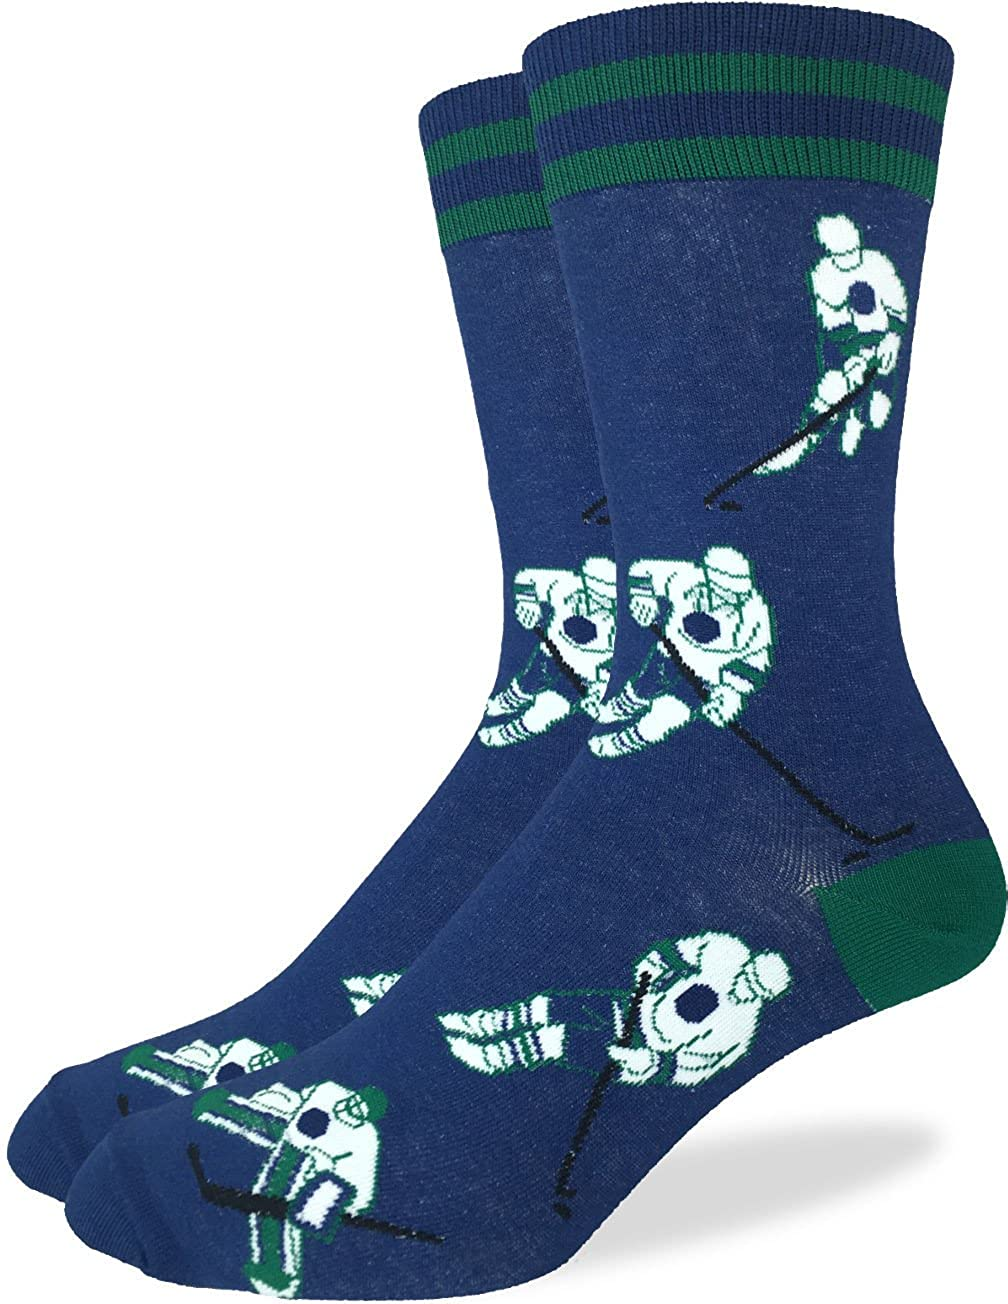 Good Luck Sock Men's Vancouver Hockey Crew Socks - Blue, Adult Shoe size 7-12 1232